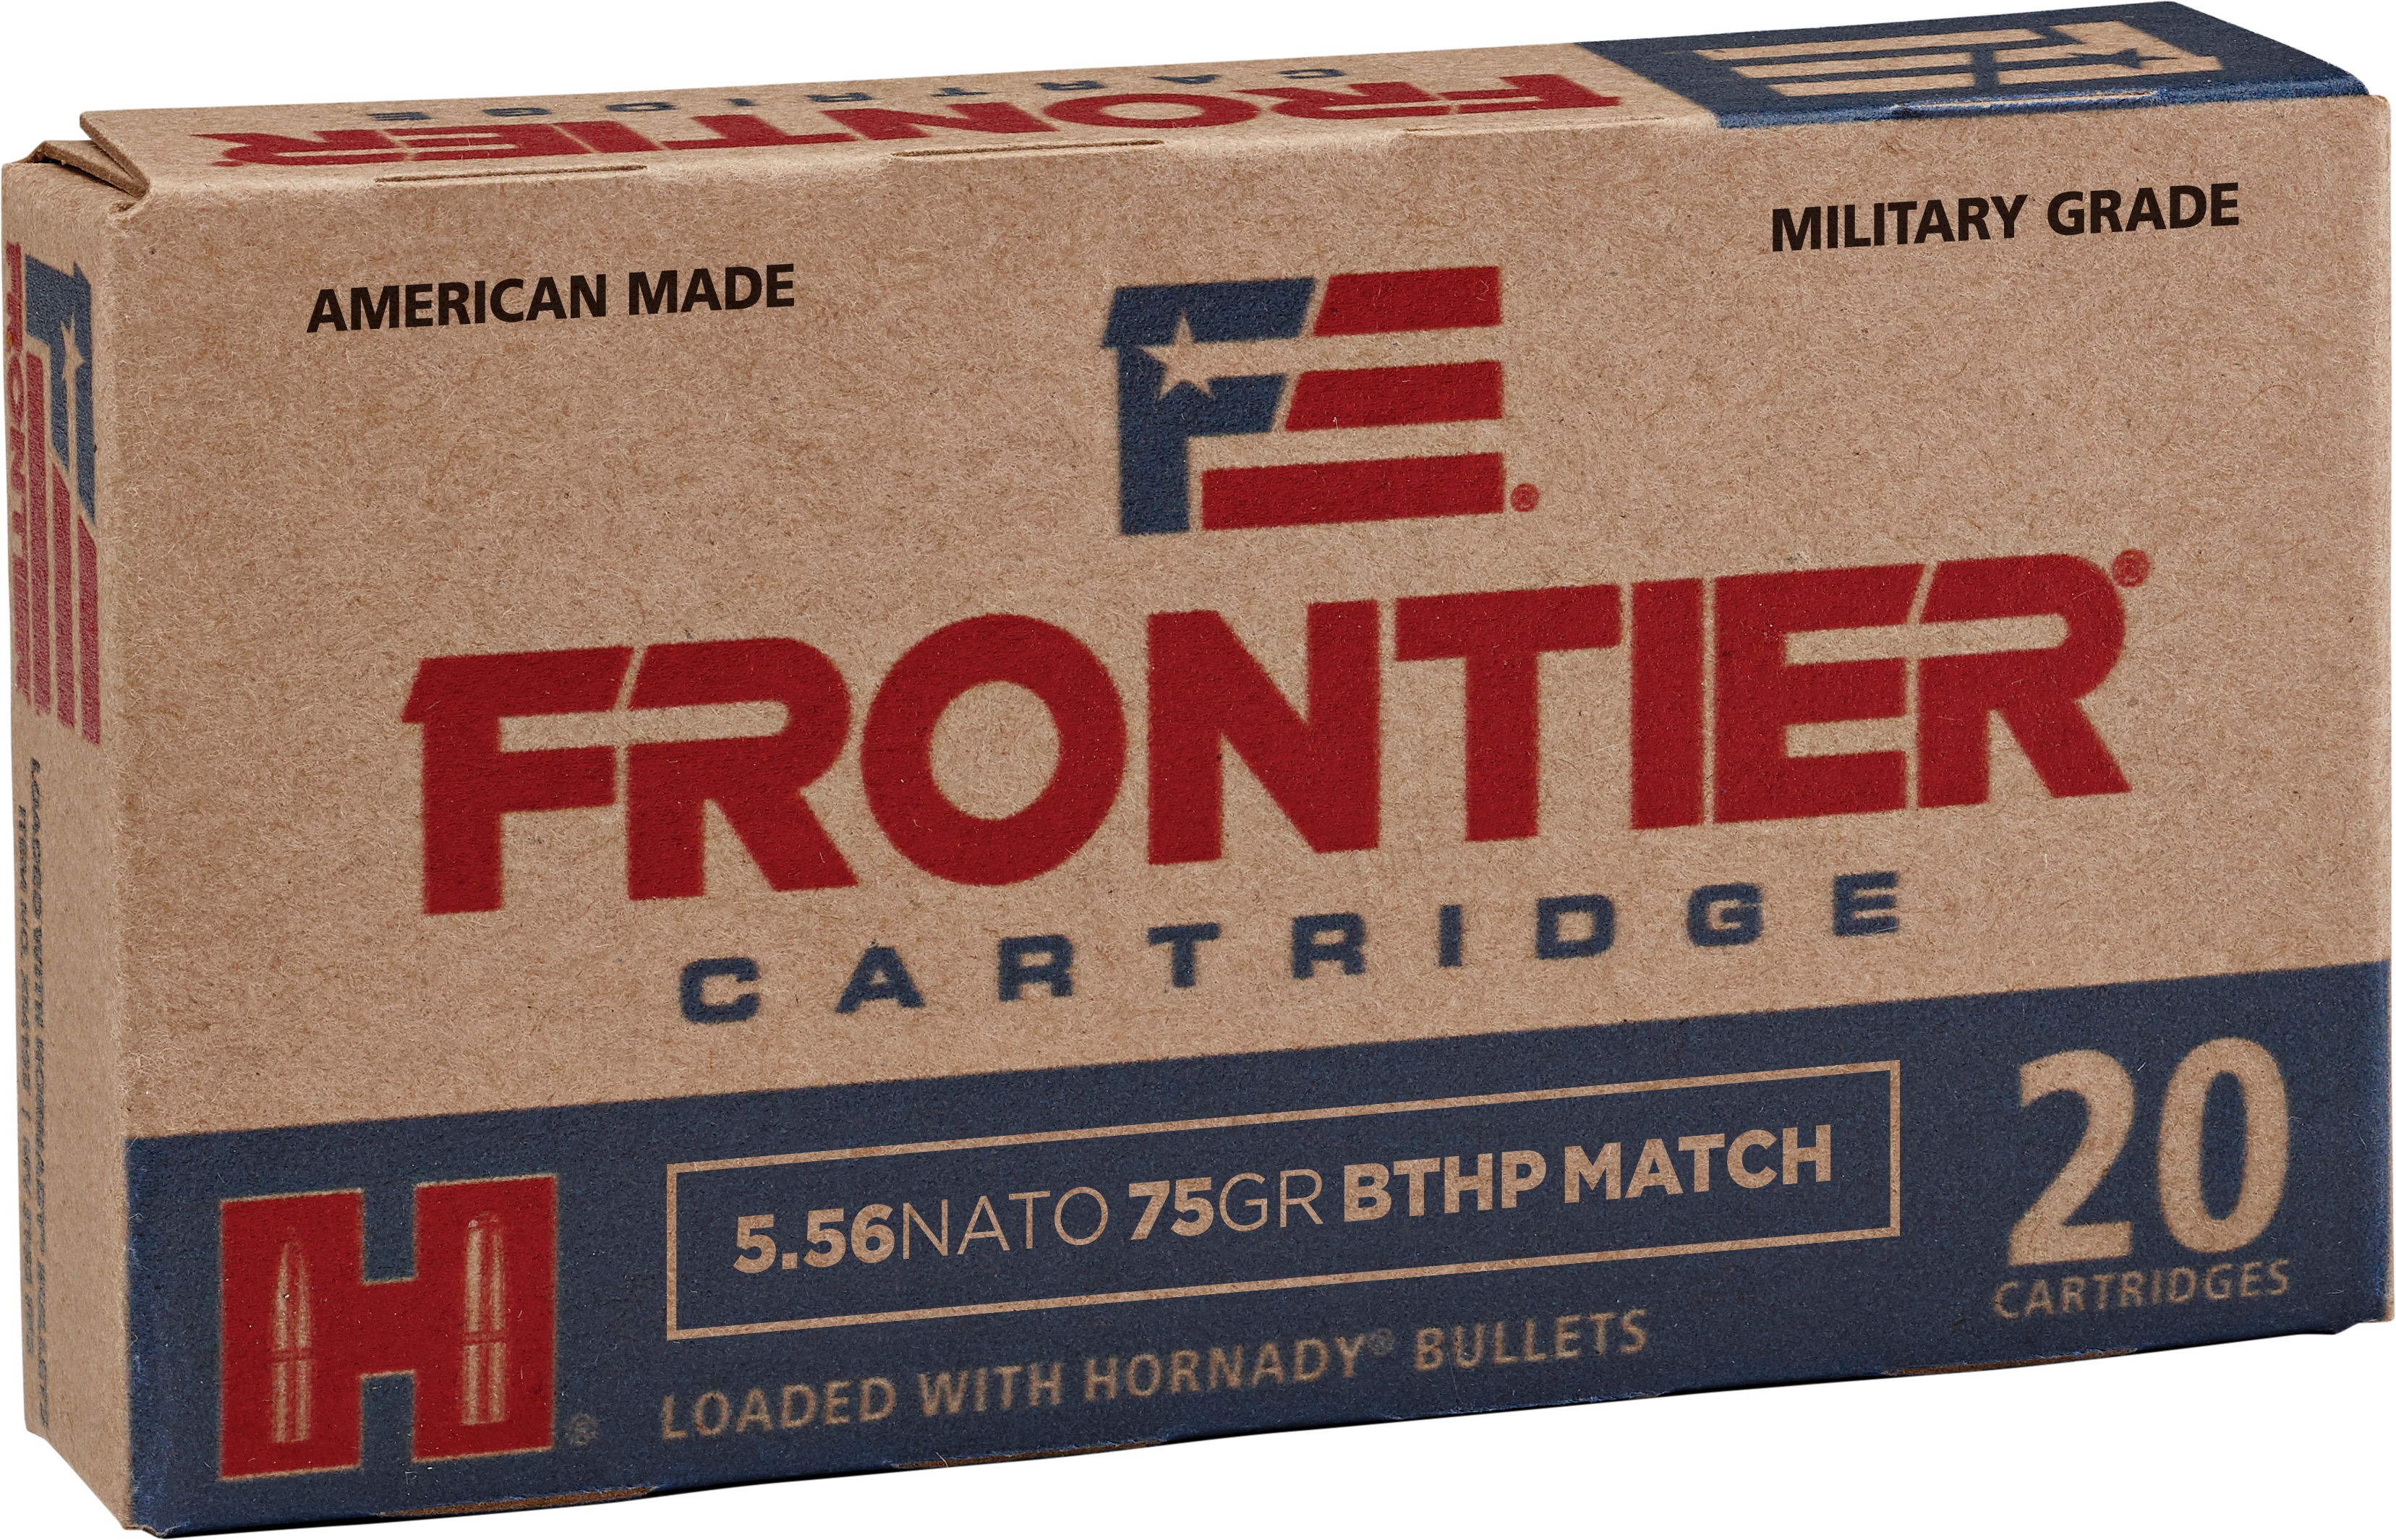 Frontier Cartridge Military Grade Ammunition 5.56x45mm NATO 75GR Hornady Hollow Point Boat Tail Per 20